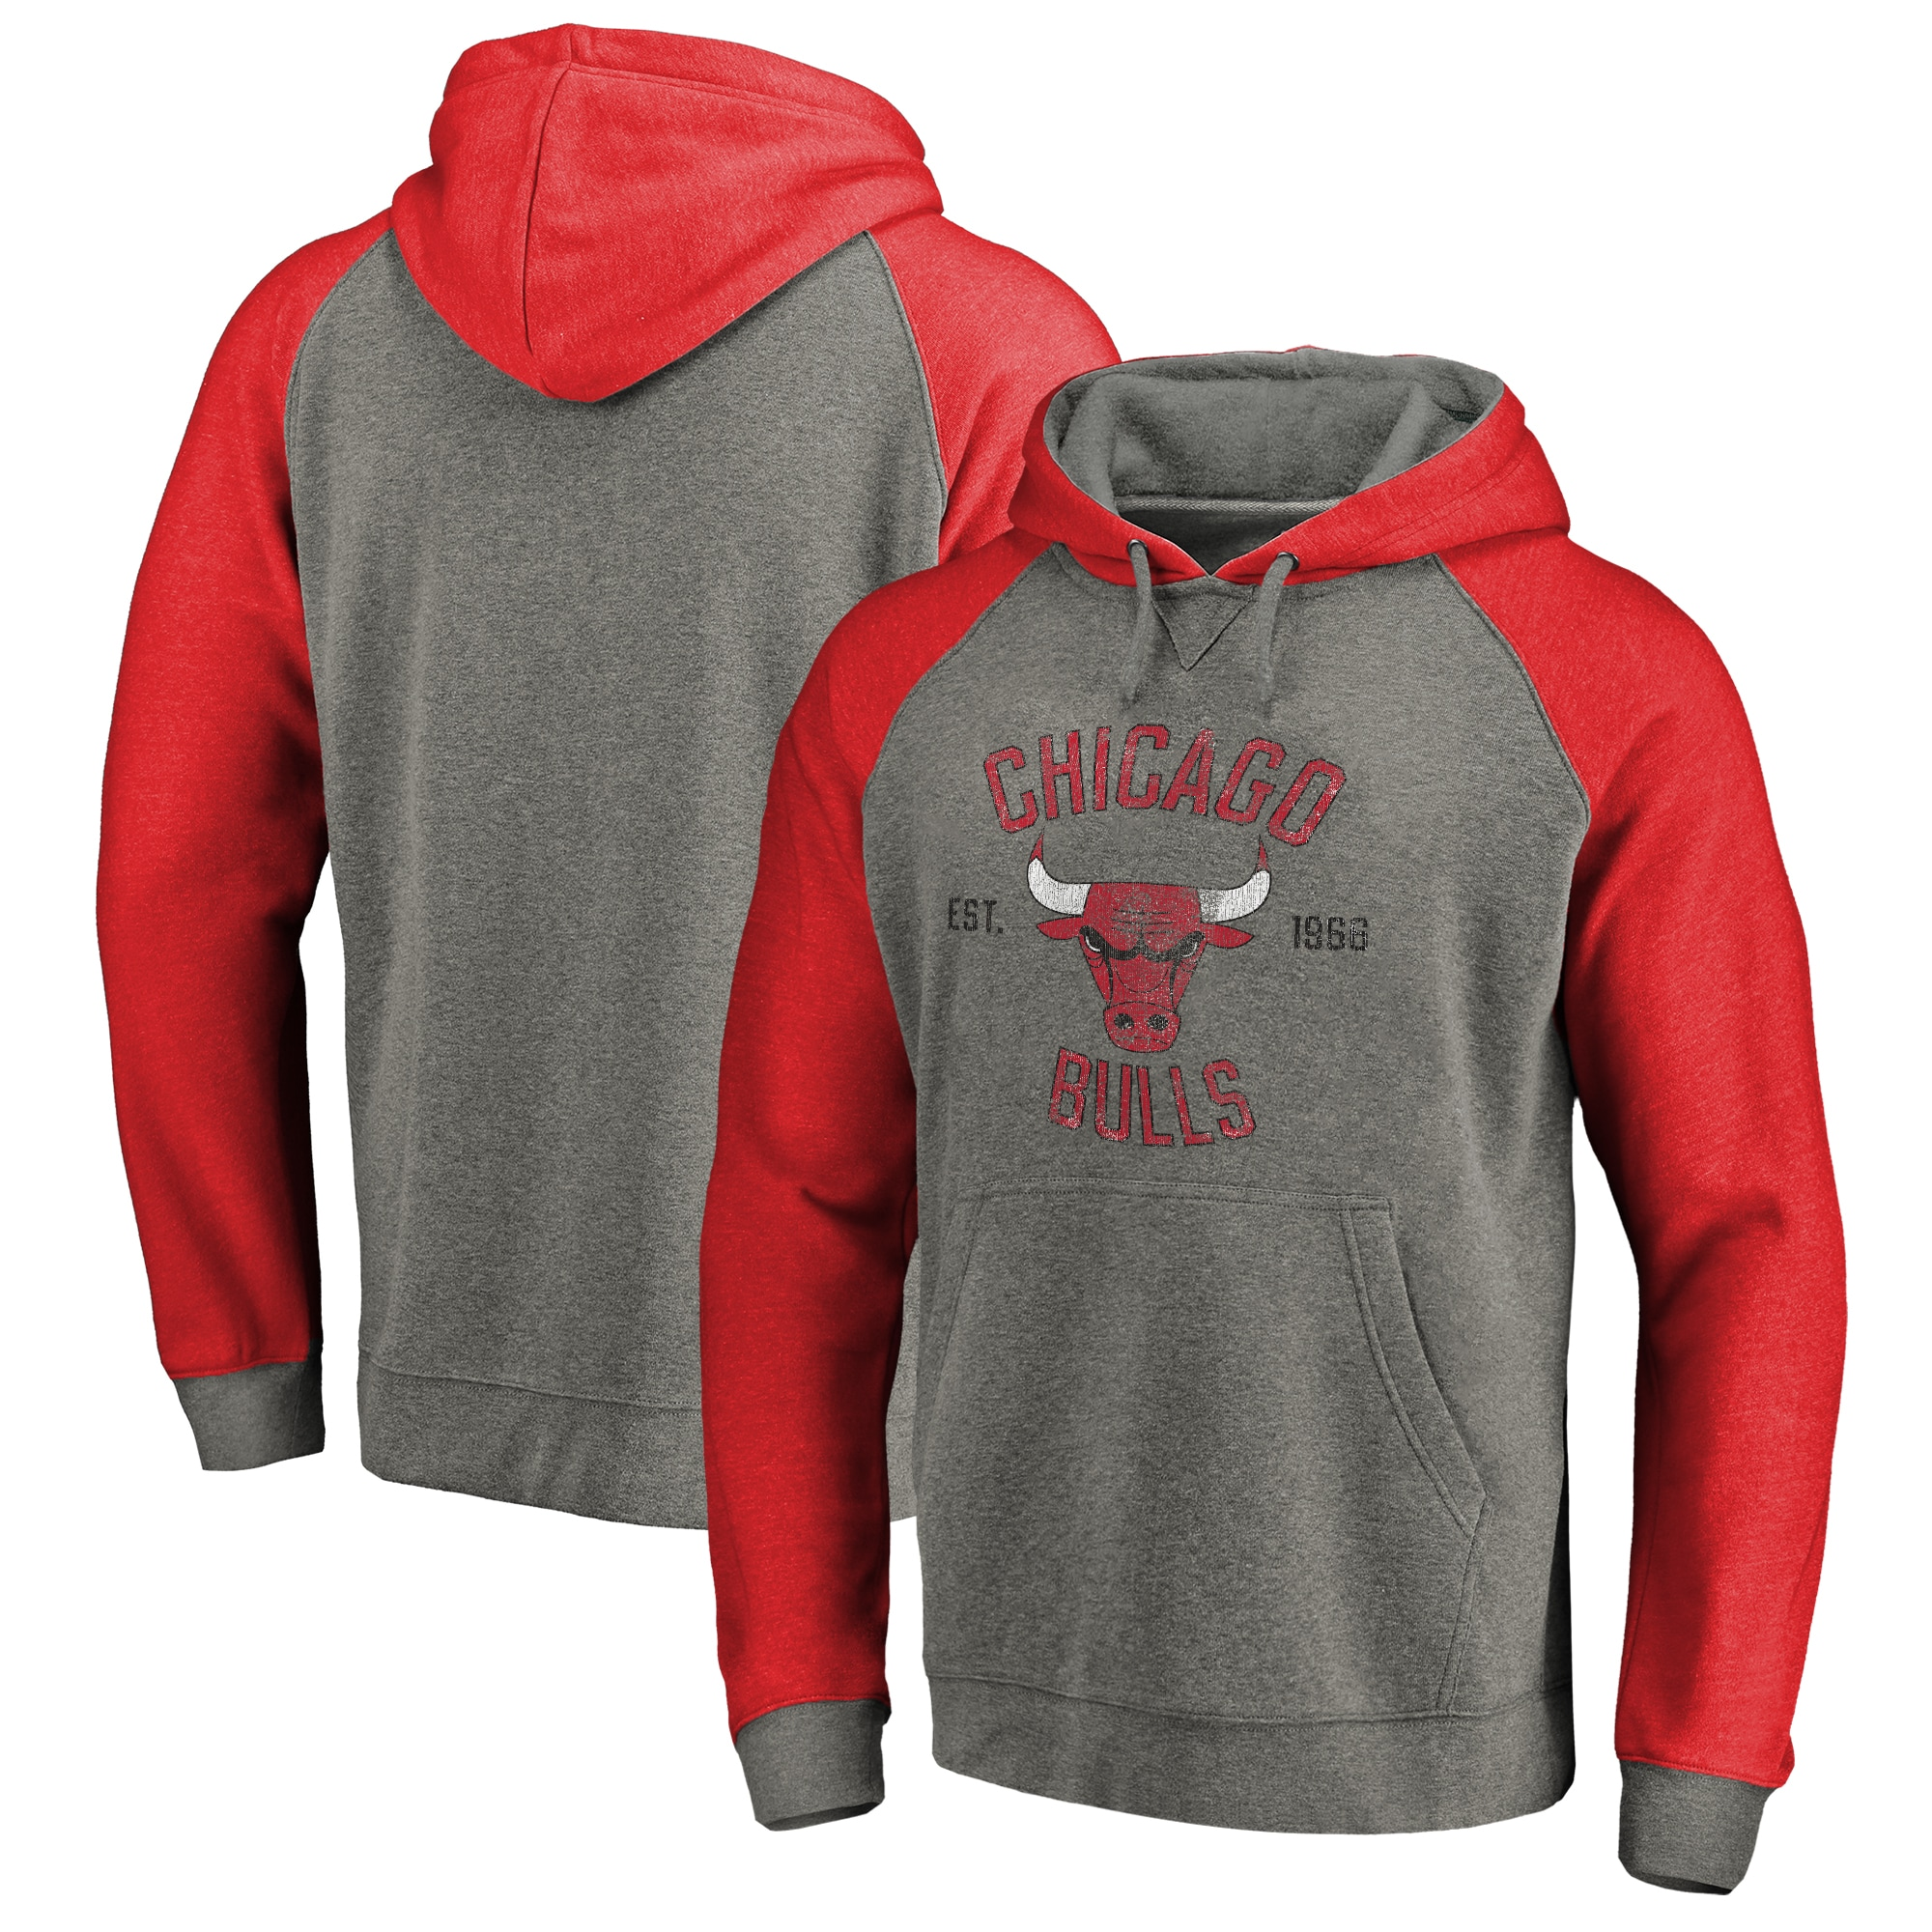 Chicago Bulls Fanatics Branded Heritage Big and Tall Tri-Blend Raglan Pullover Hoodie - Heathered Gray